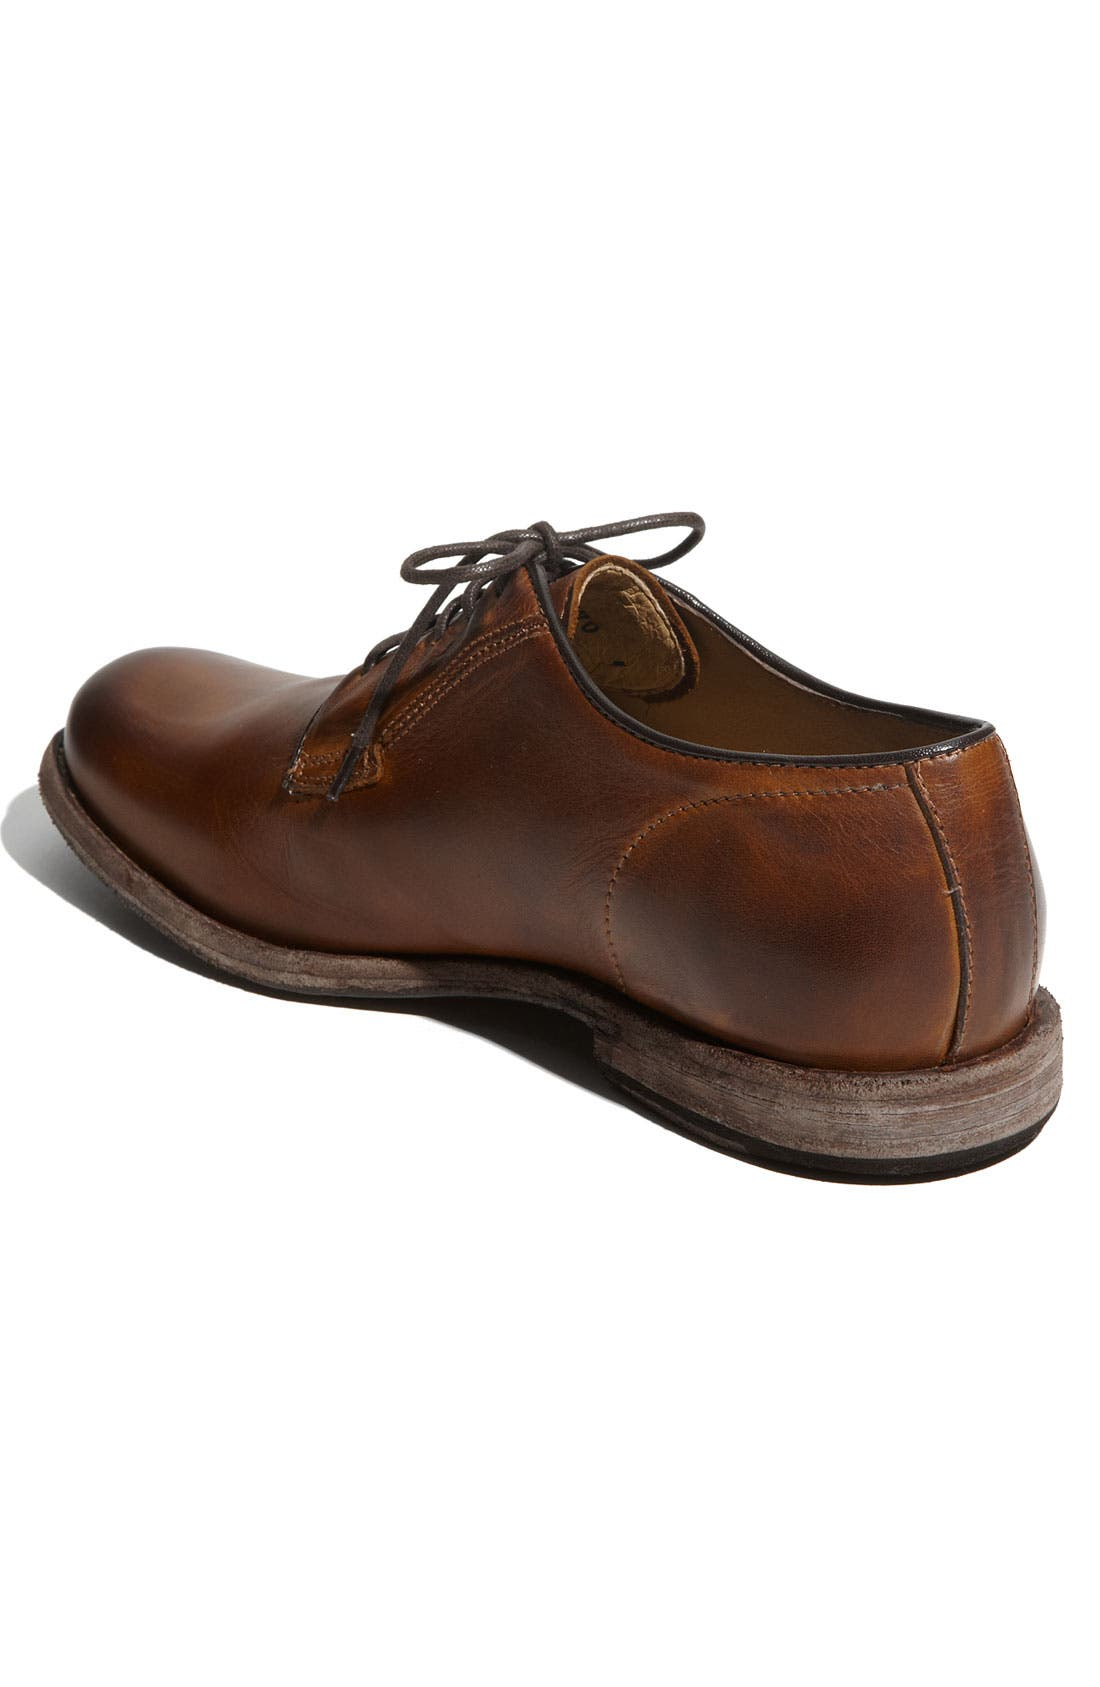 Alternate Image 2  - Frye 'Phillip' Oxford